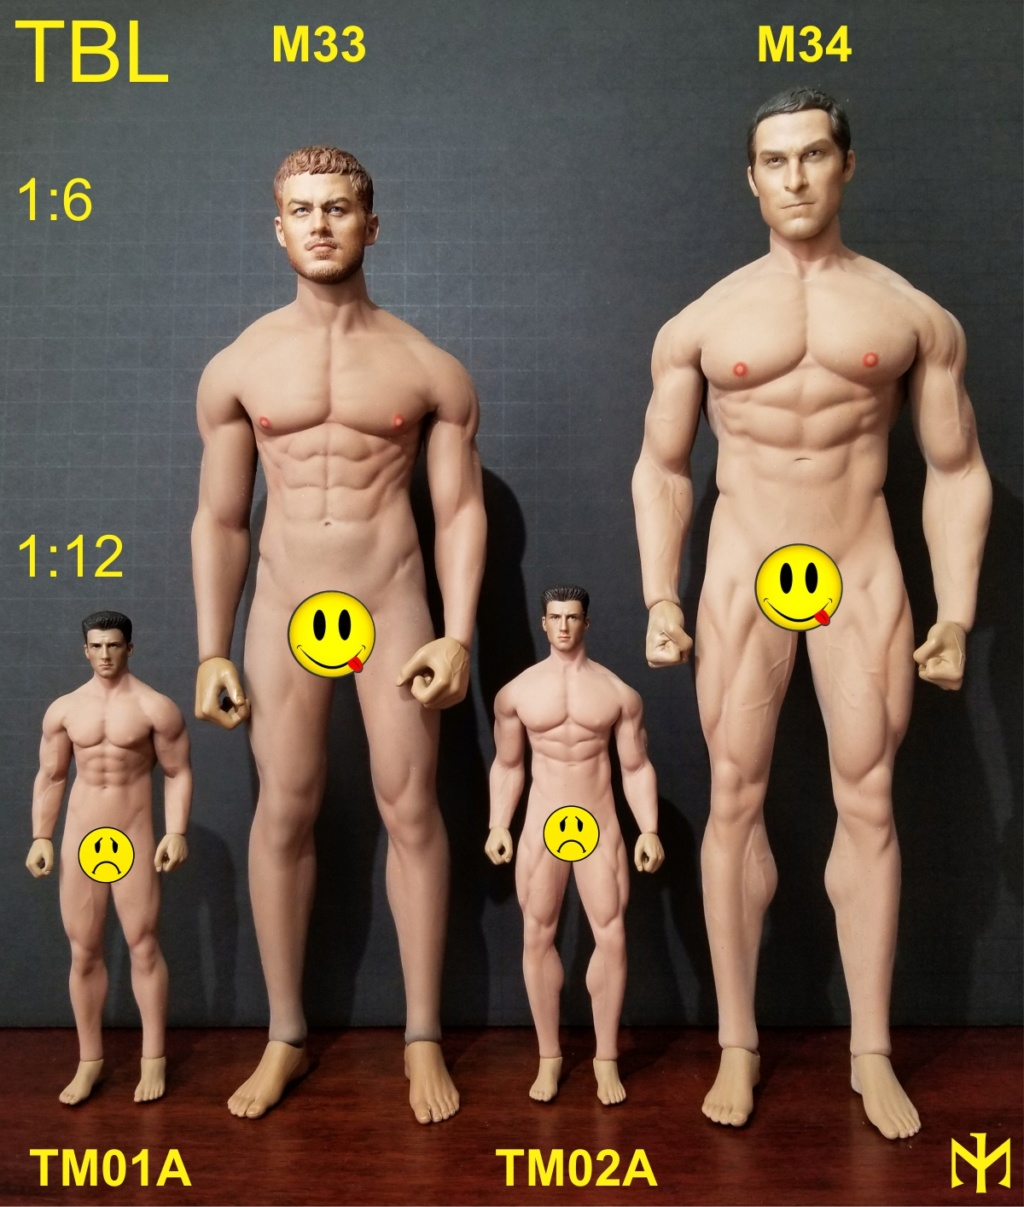 female - TBLeague (Phicen) seamless body scale comparison (updated with Part III) Tblmbs10